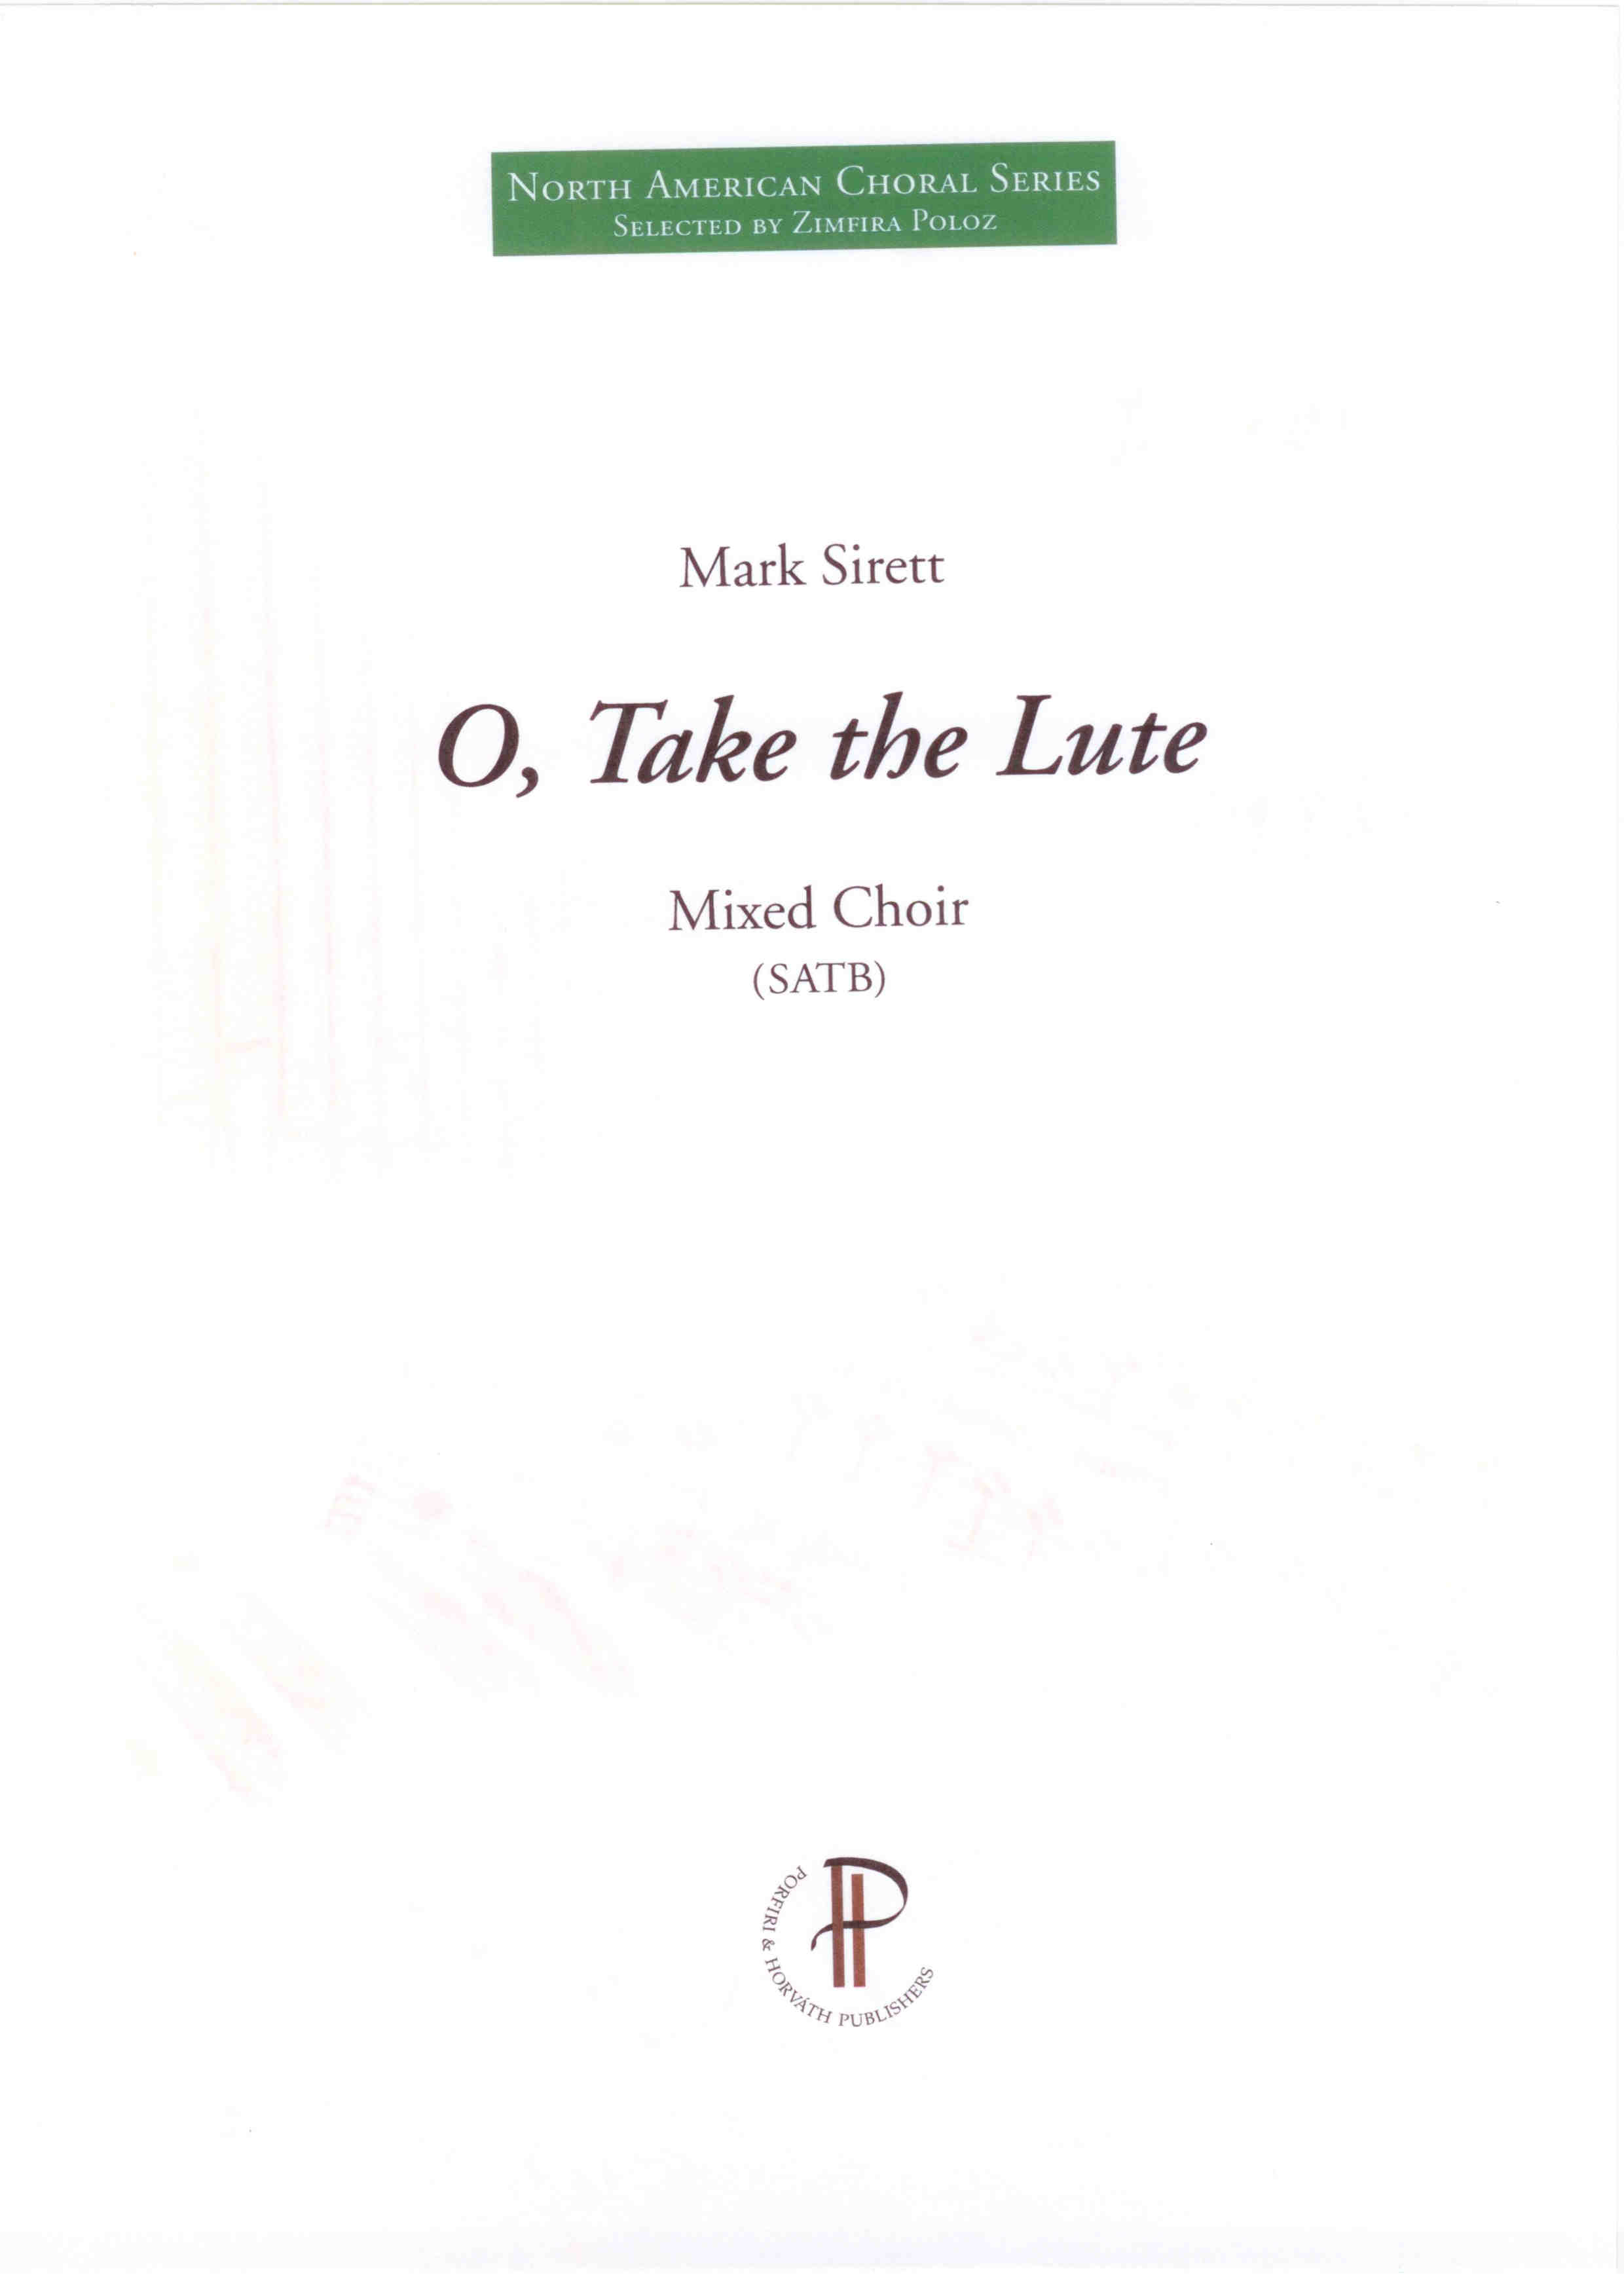 O, Take the Lute